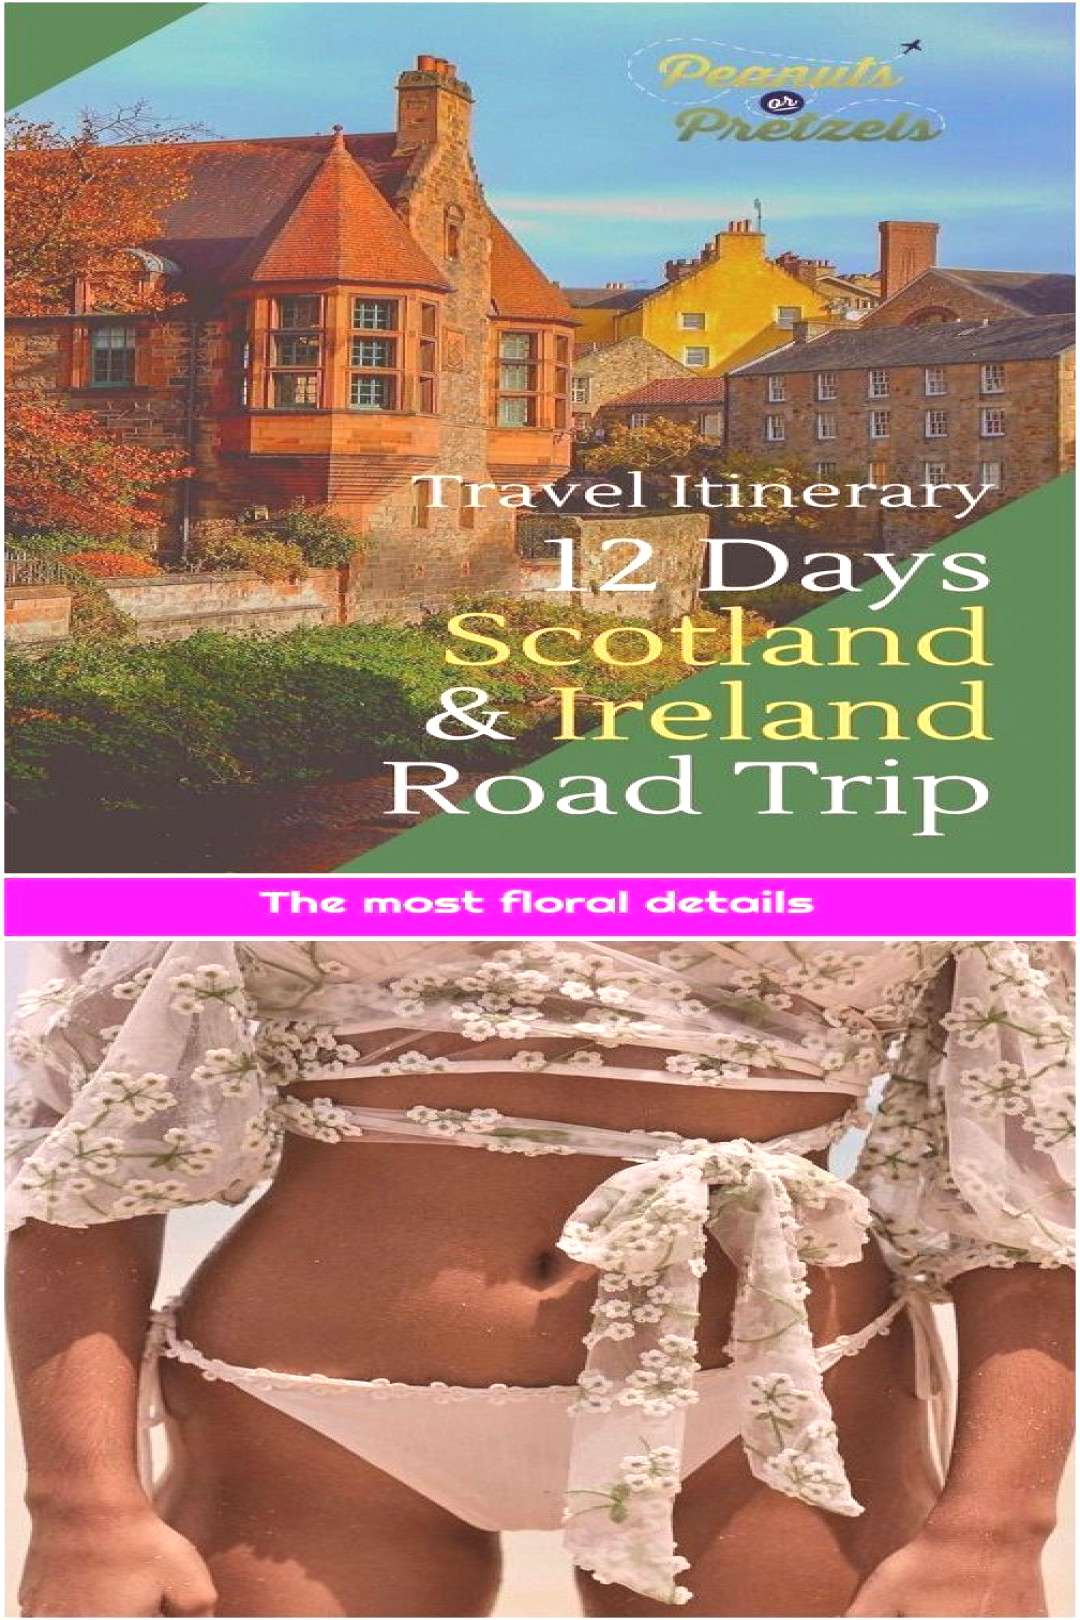 The most floral details 1. Travel Itinerary: 12 Days Scotland and Ireland Itinerary & Road Trip –